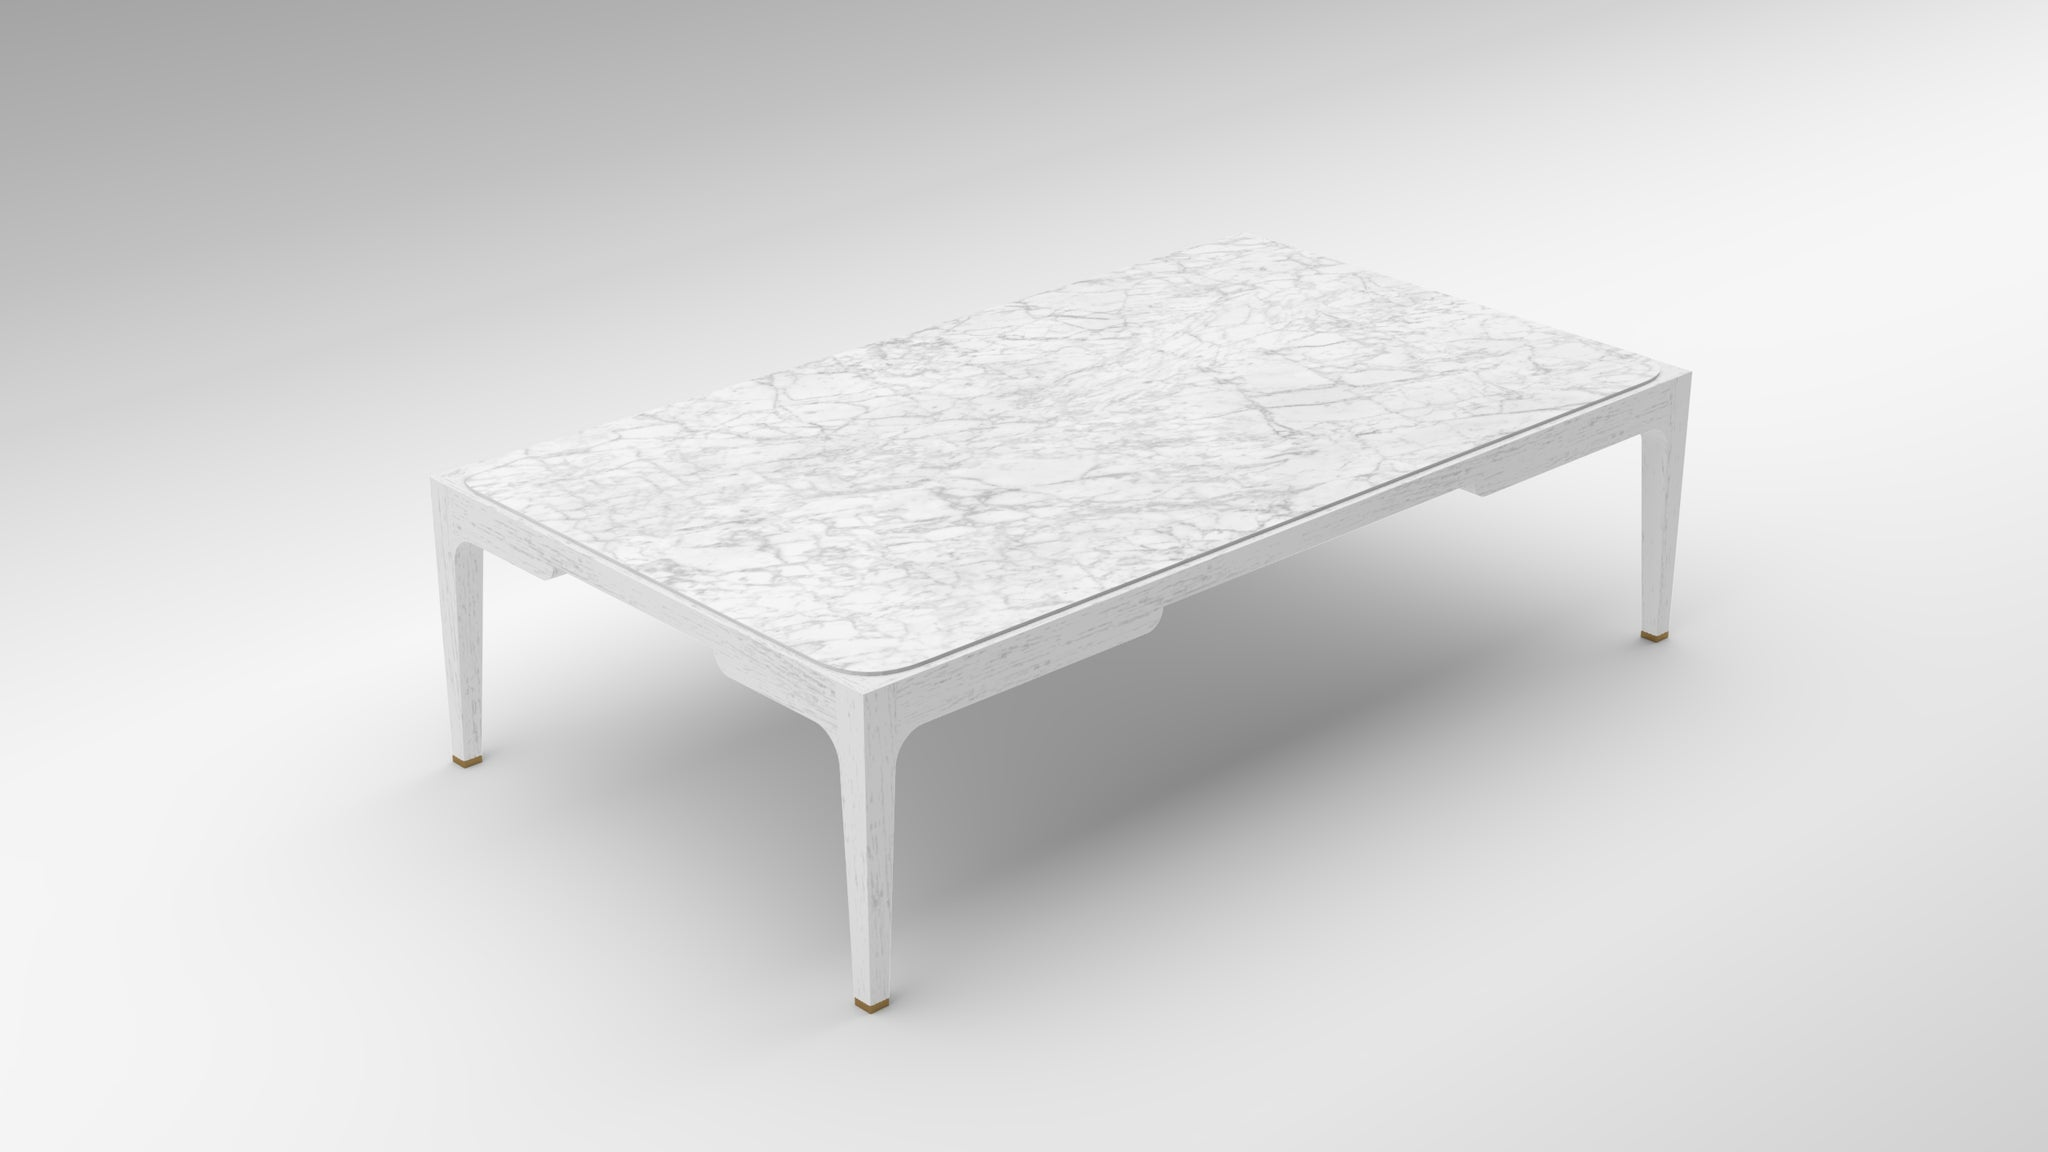 Carrara marble, marble coffee table, white marble, precious marble, akar Carrara table, coffee table white, white oak, white marble coffee table, rectangle coffee table, akar de nissim, nissim coffee table, oak table, minimalist design,